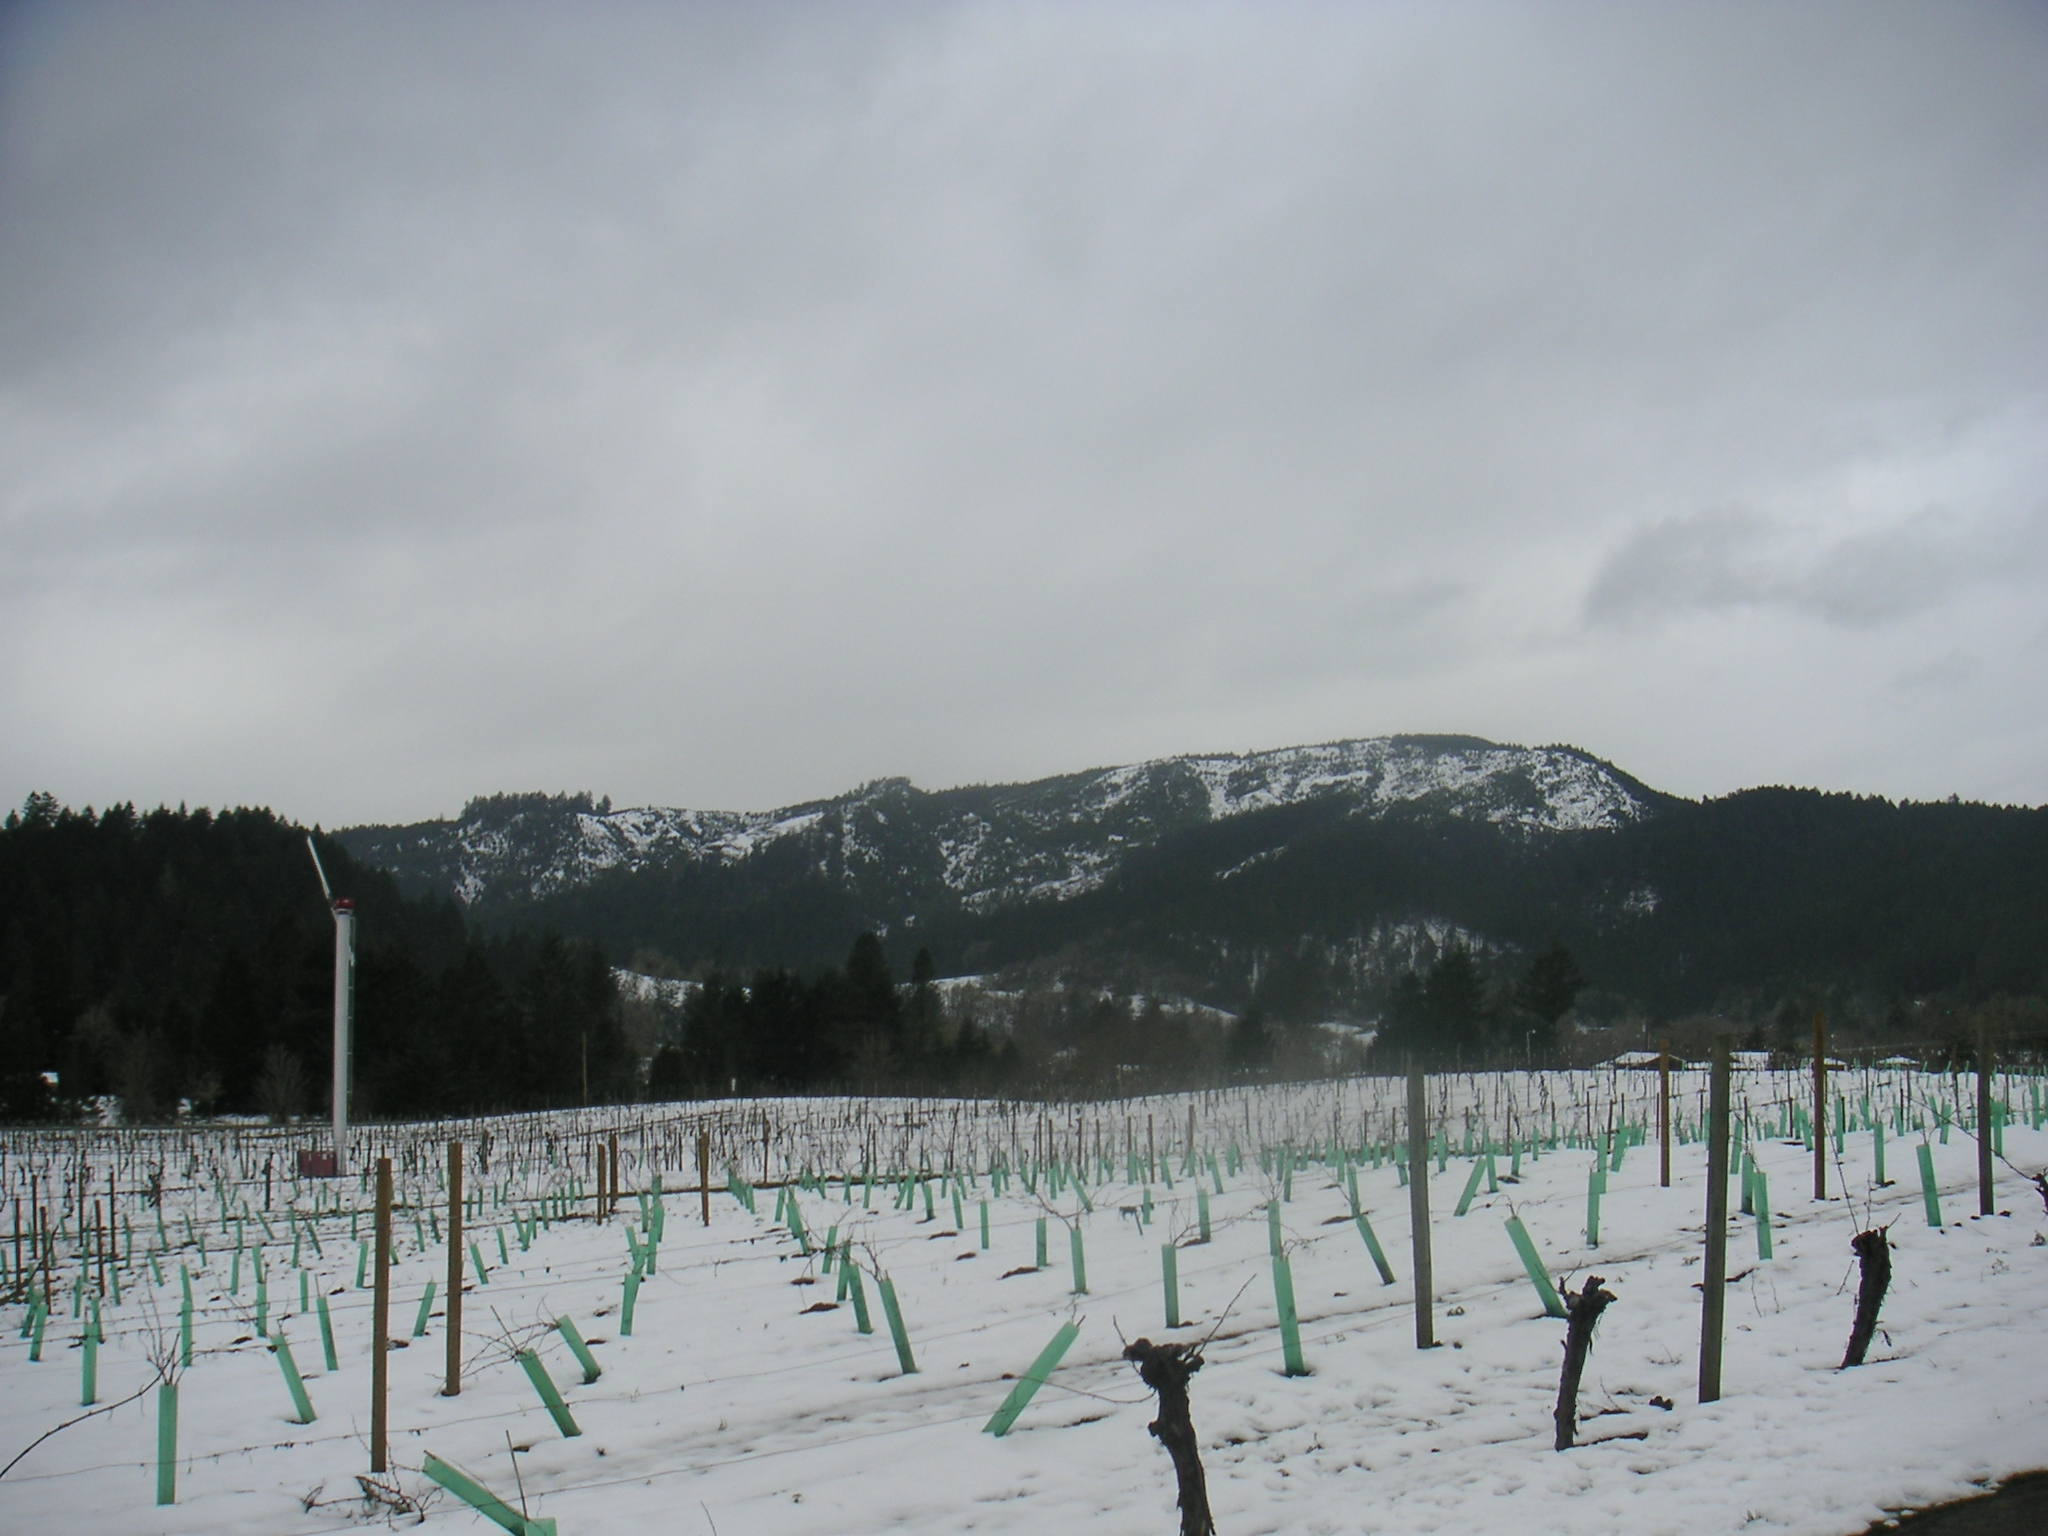 Snowy Oregon vineyard